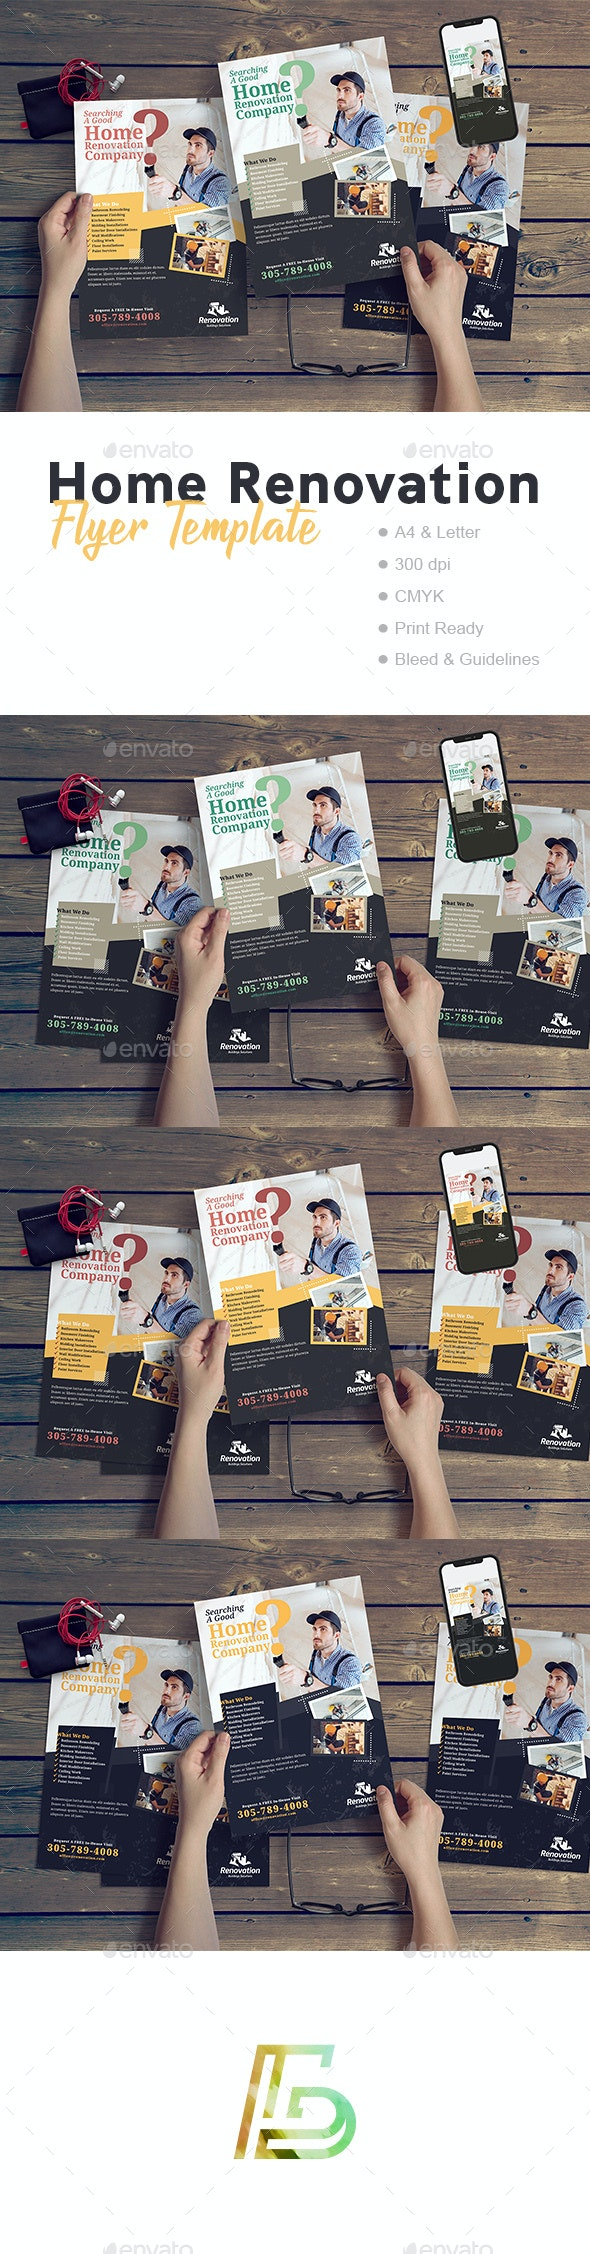 Home Renovation Flyer Template - Corporate Flyers